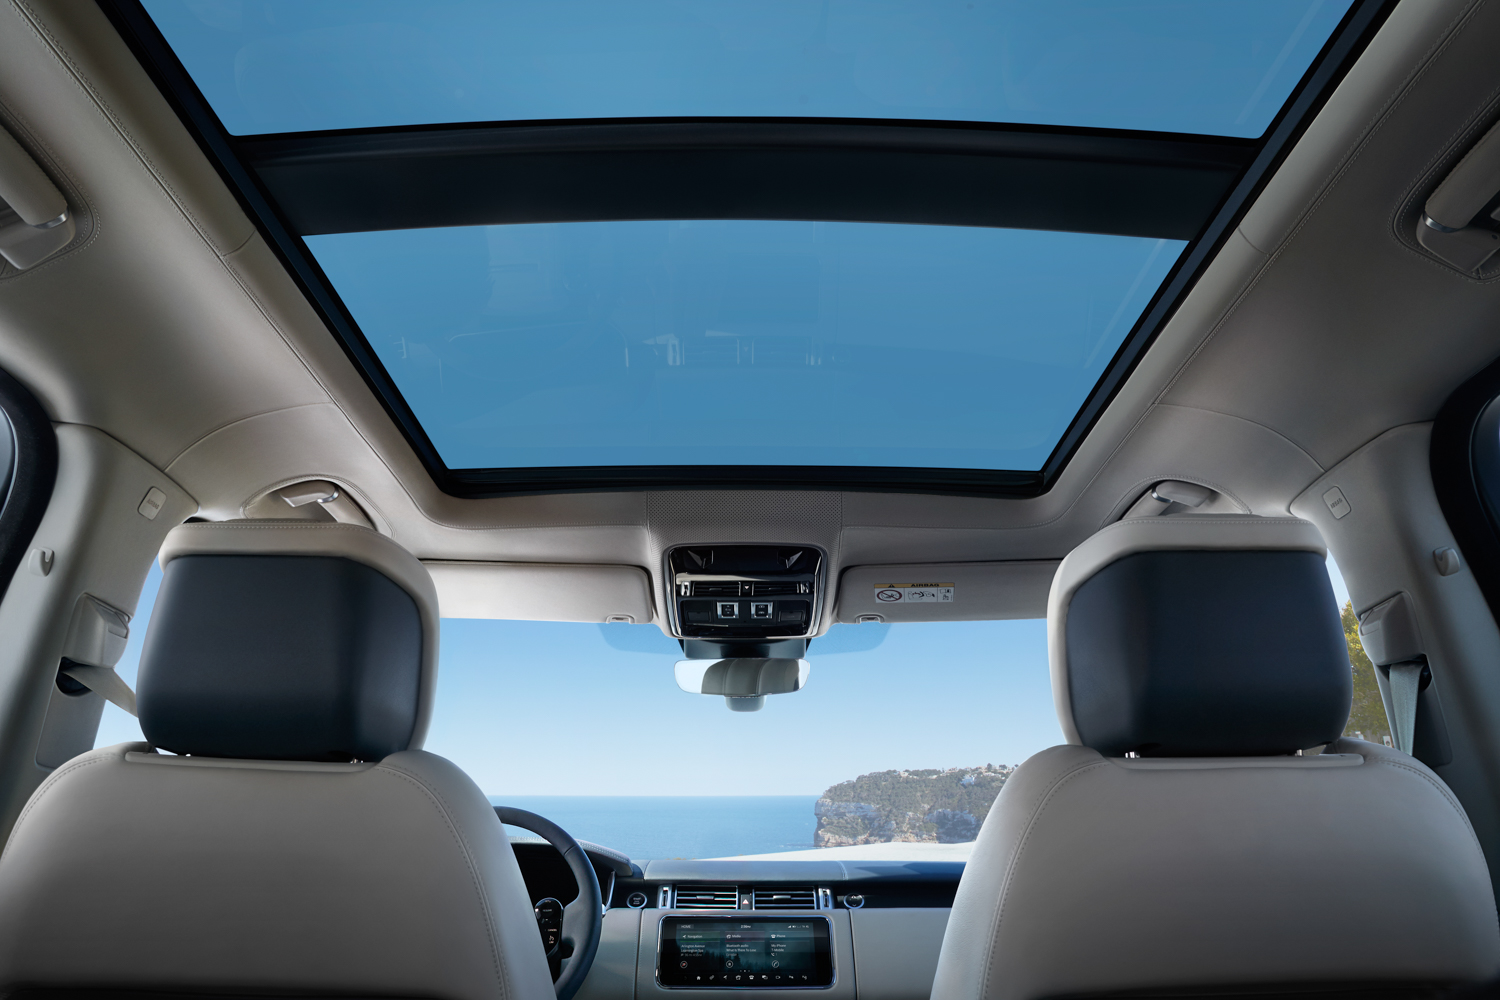 2020 Land Rover Range Rover glass roof